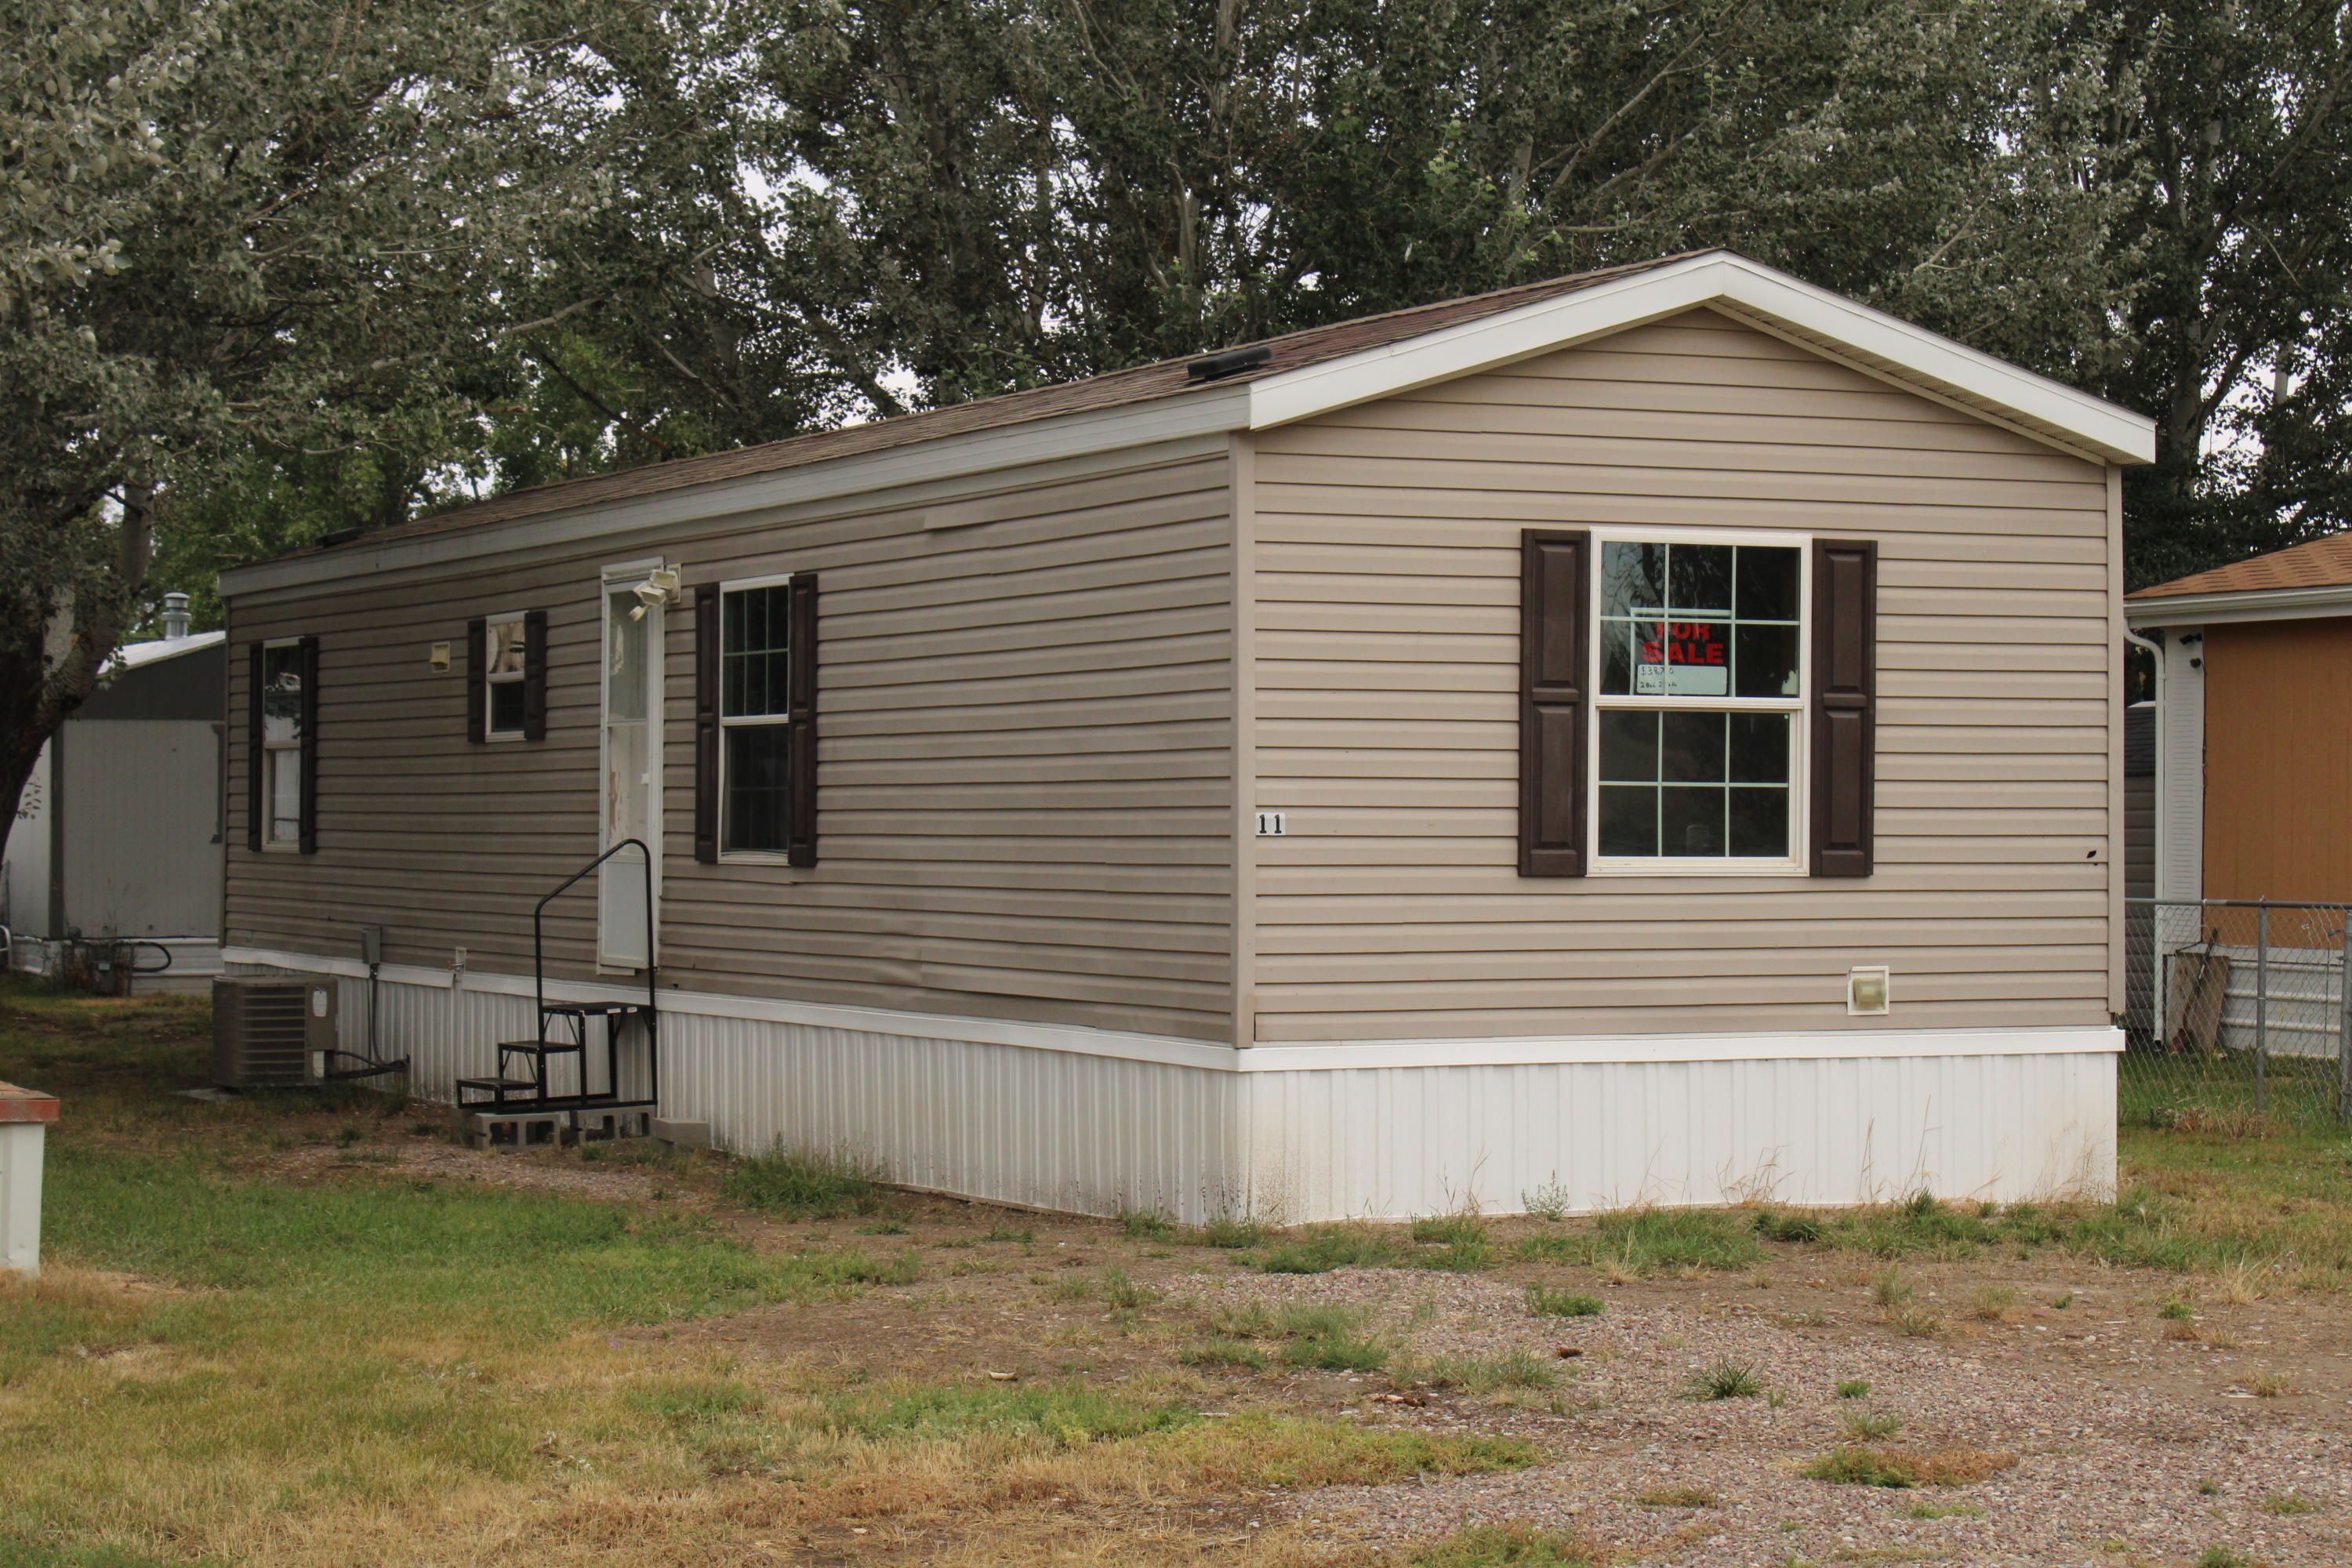 This 2012, 2 bed, 2 bath Mobile home is located in Vaughn only 12 miles from Great Falls. Interstate Highway the whole way! It is located in the Beautiful Red Sky Community mobile home park. Park has been under new management with an onsite manager. Beautiful Rural setting with mature trees.Vaughn has a grocery stores, Restaurant/bars, and the school is within walking distance.Buyer must be accepted unto the park.Home must stay in the park for 24 mos after Closing. Lot Rent is: $395/mo.Fences and 2 non aggressive breed dogs are allowed.No Kitchen Appliances are included.